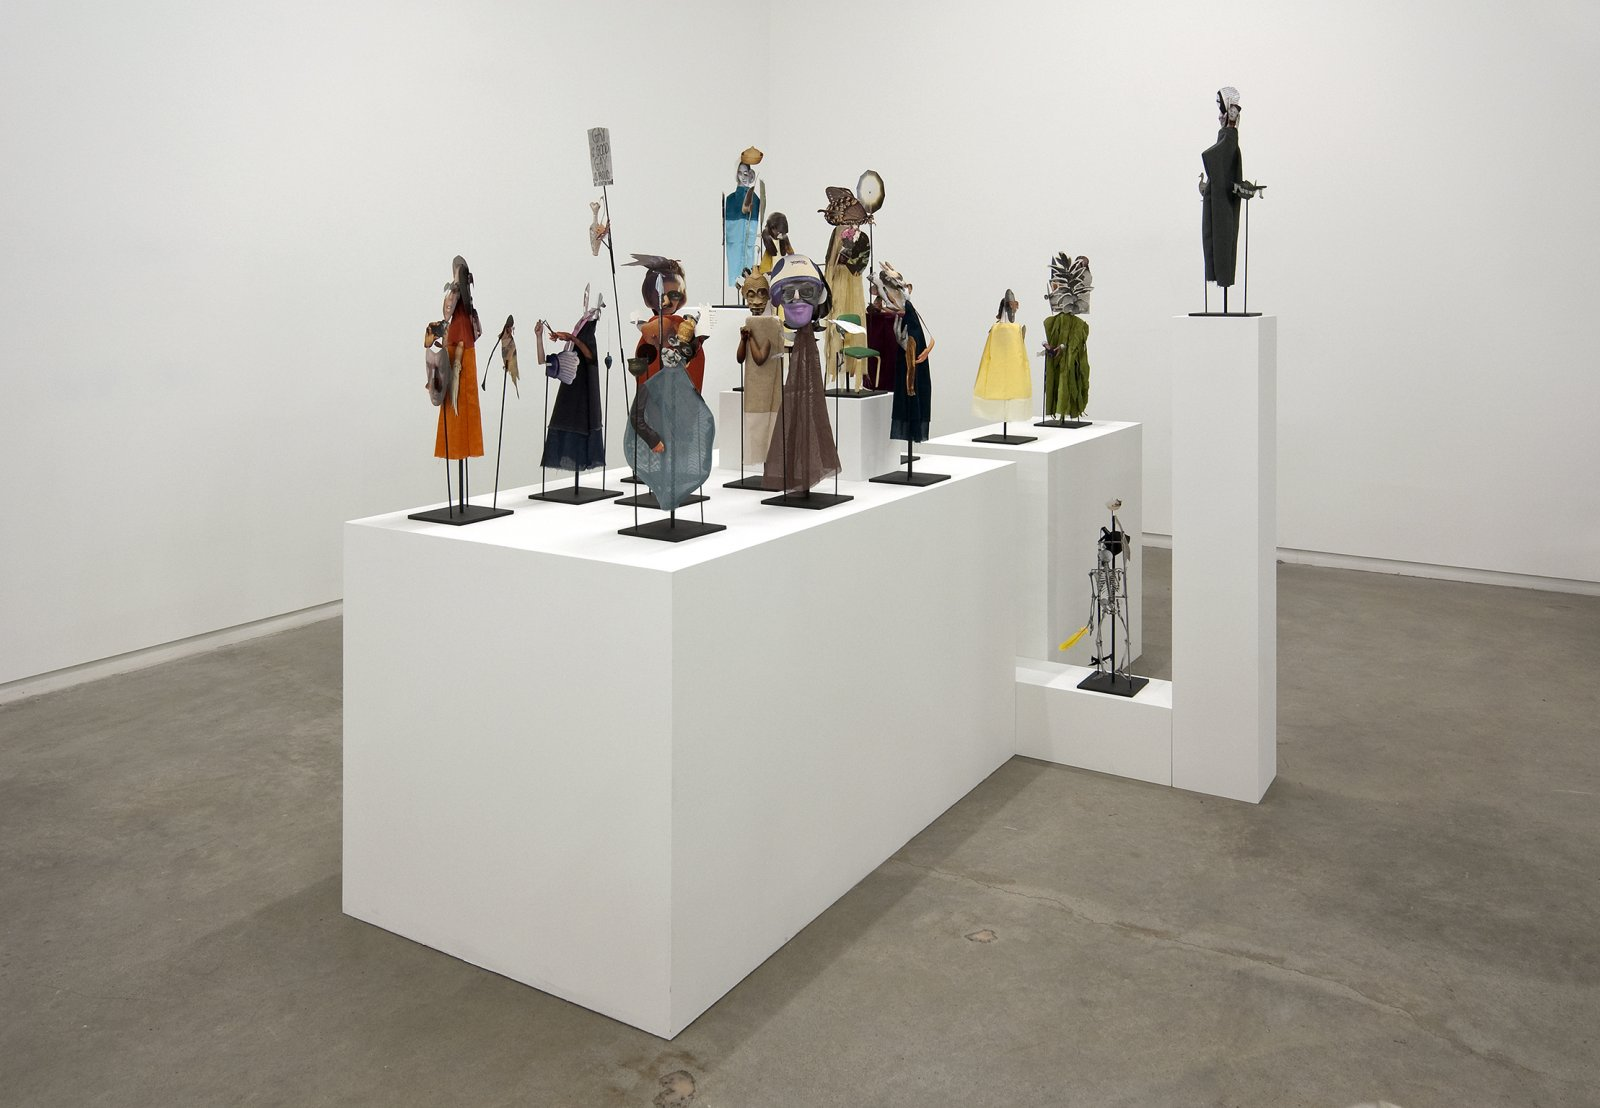 Geoffrey Farmer,The Surgeon and the Photographer, 2009, paper, textile, wood, metal, 365 figures, each figure approximately: 18 x 5 x 5 in. (45 x 13 x 13 cm)